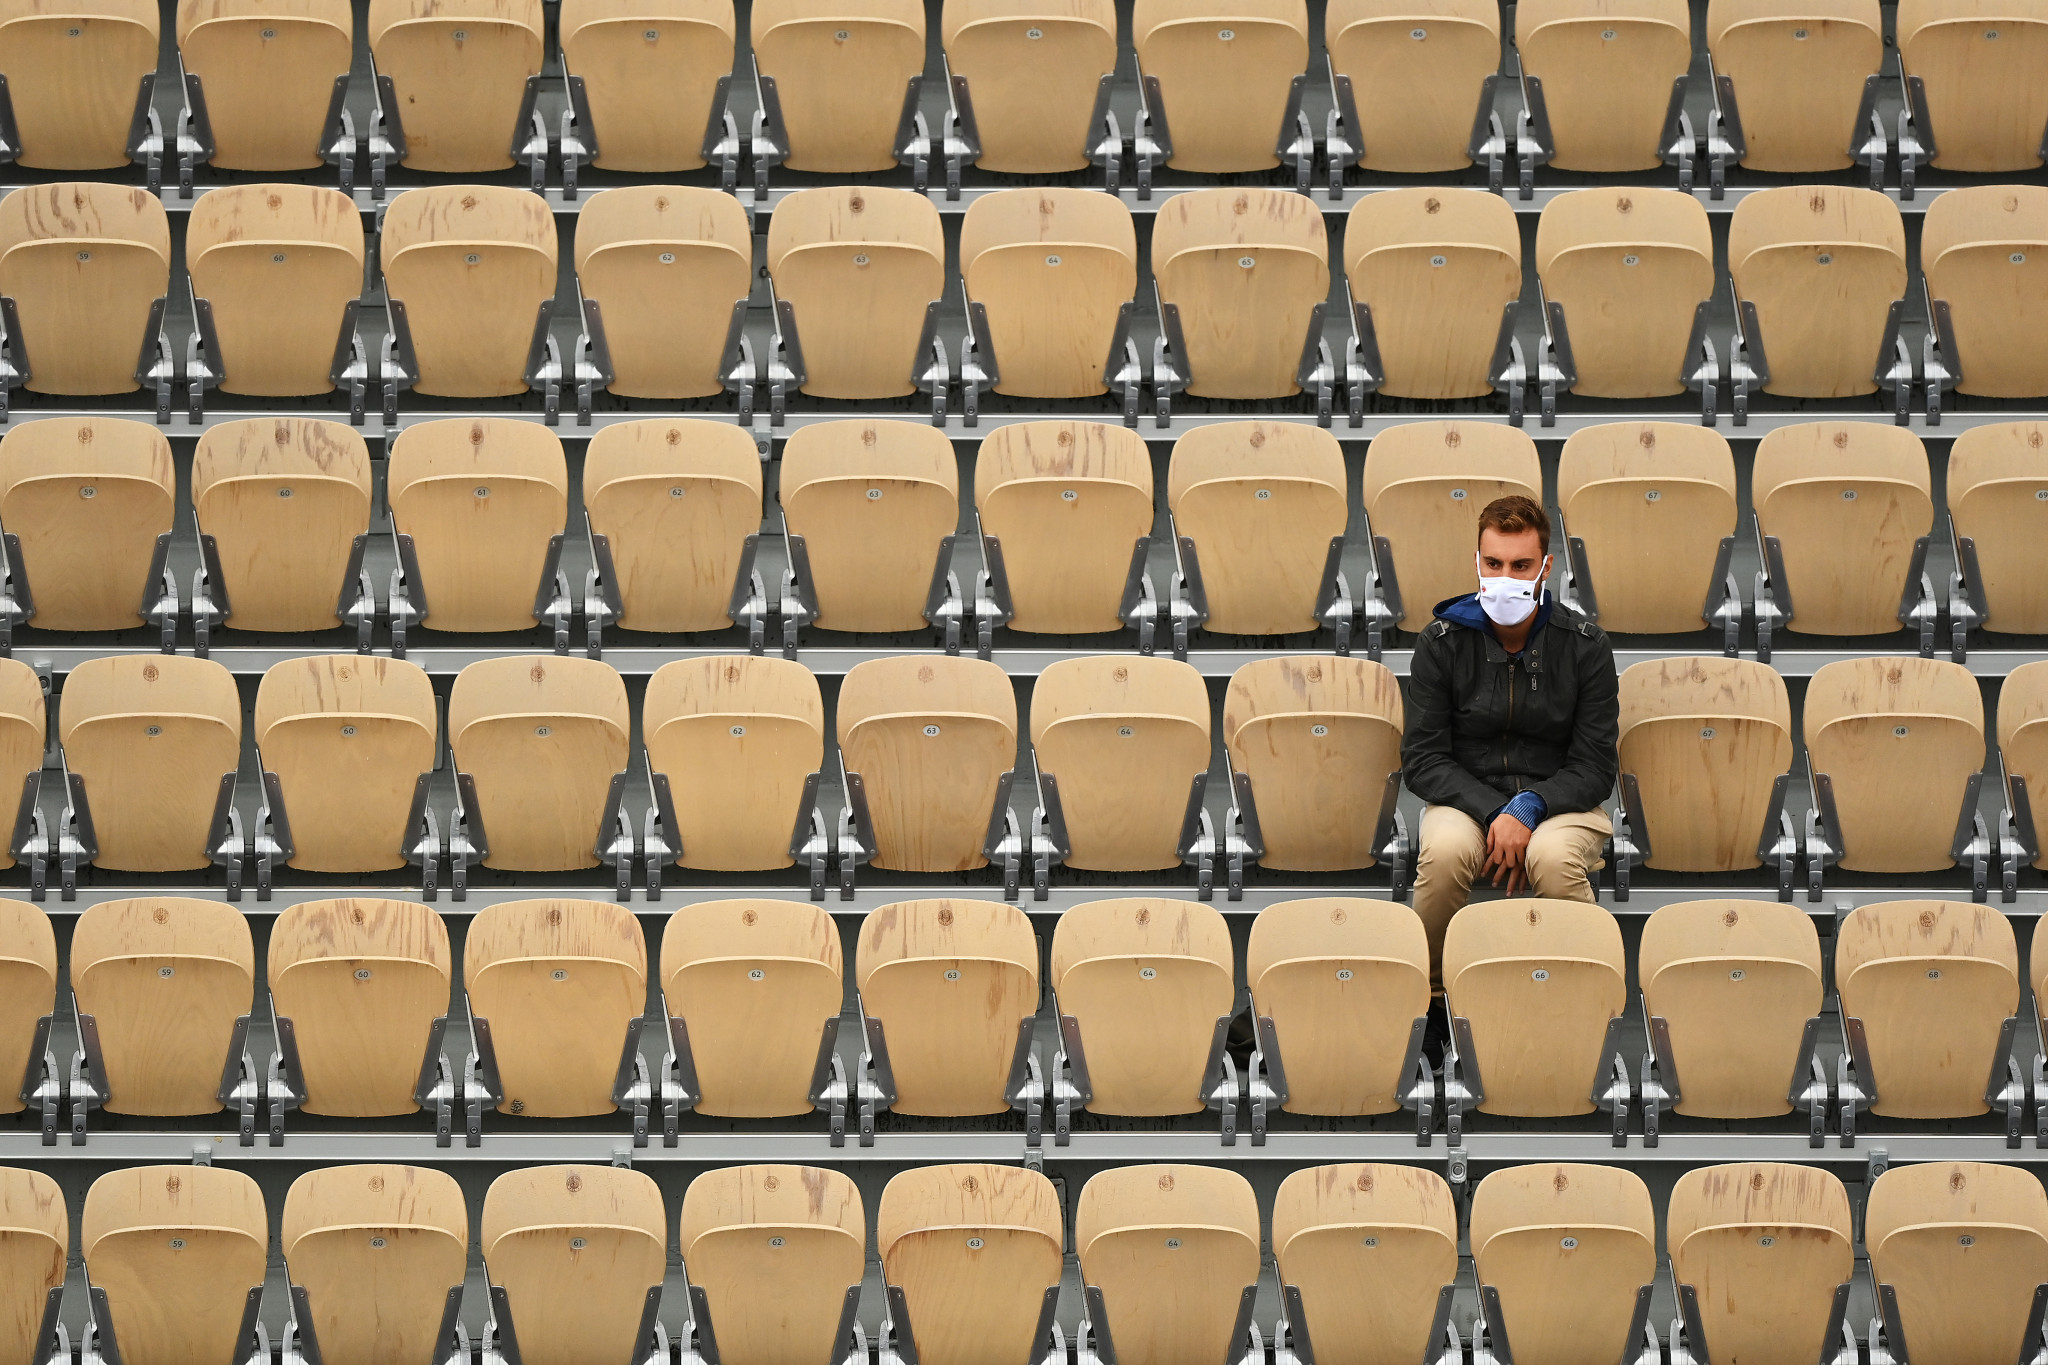 Owing to the coronavirus pandemic, capacity is limited to 1,000 fans in the grounds per day in Paris ©Getty Images